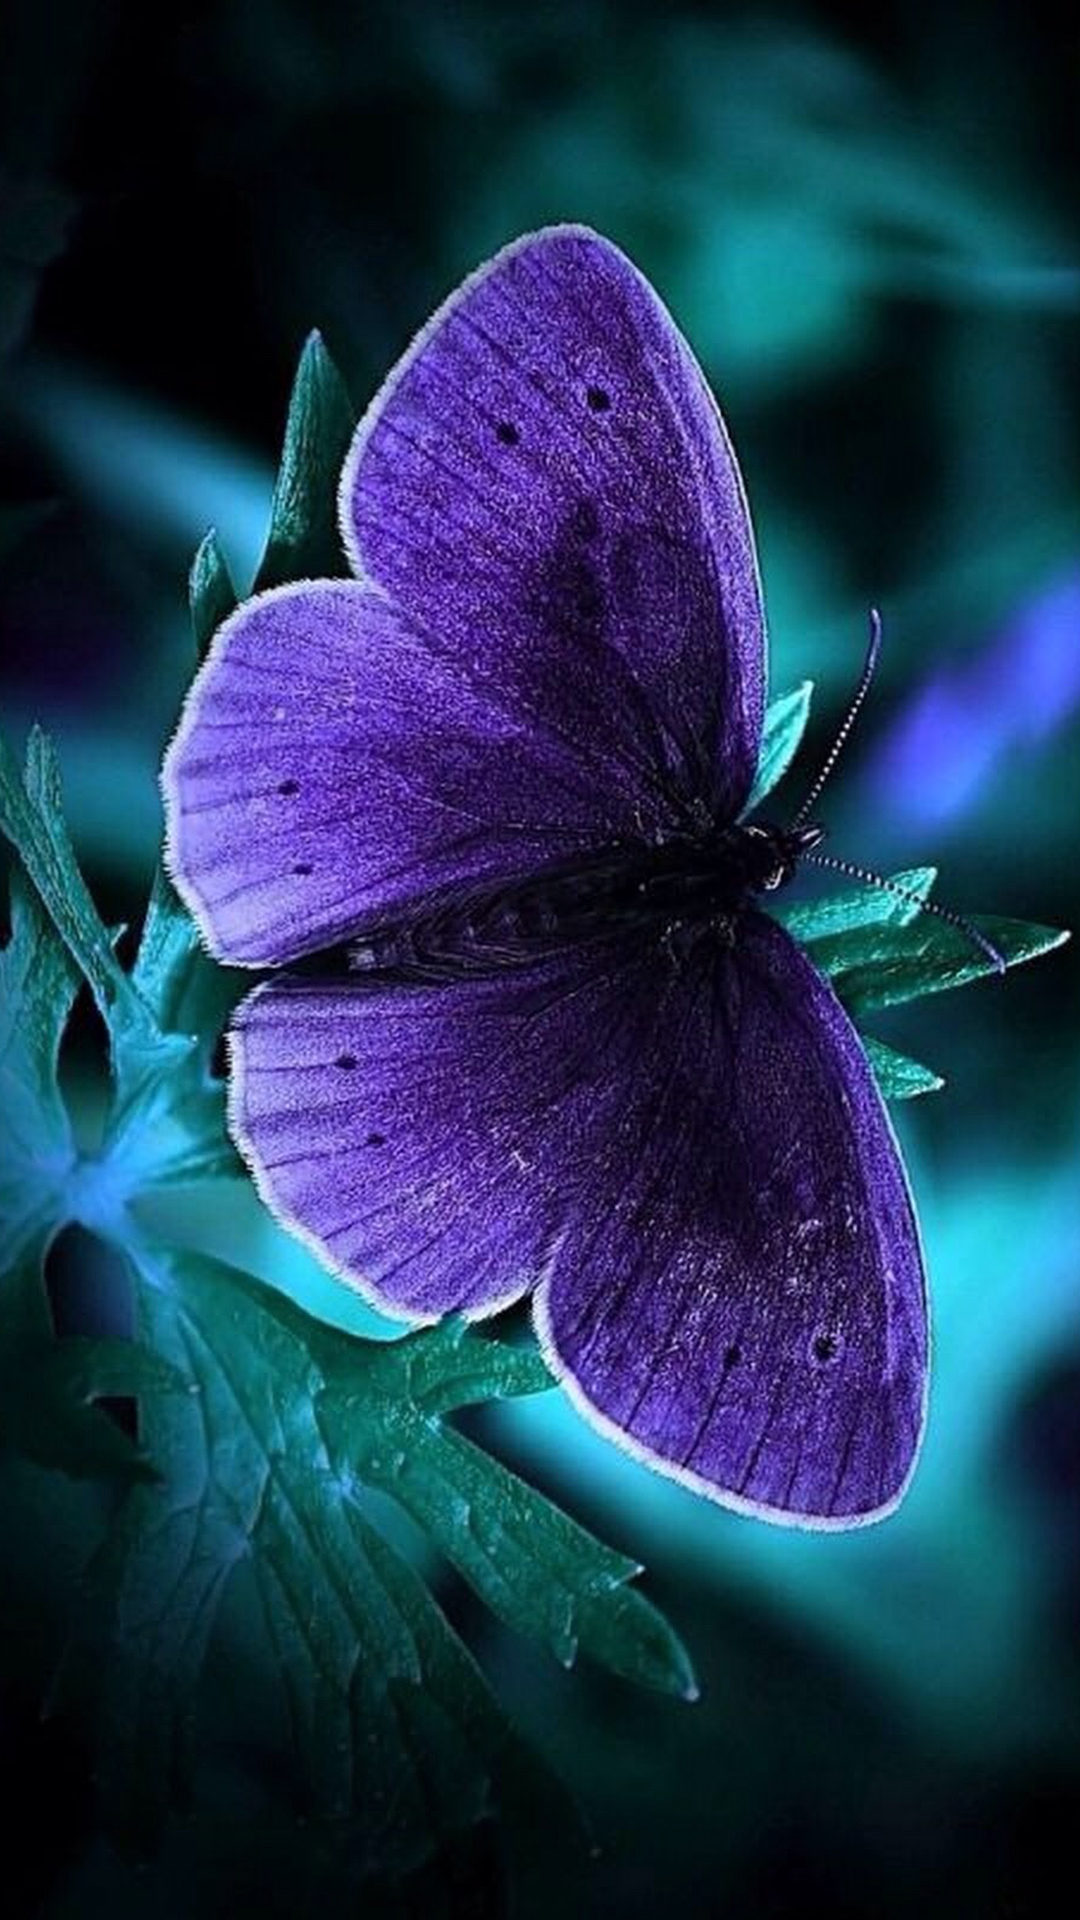 Cool Phone Wallpapers with Blue Butterfly in Dark - HD ...